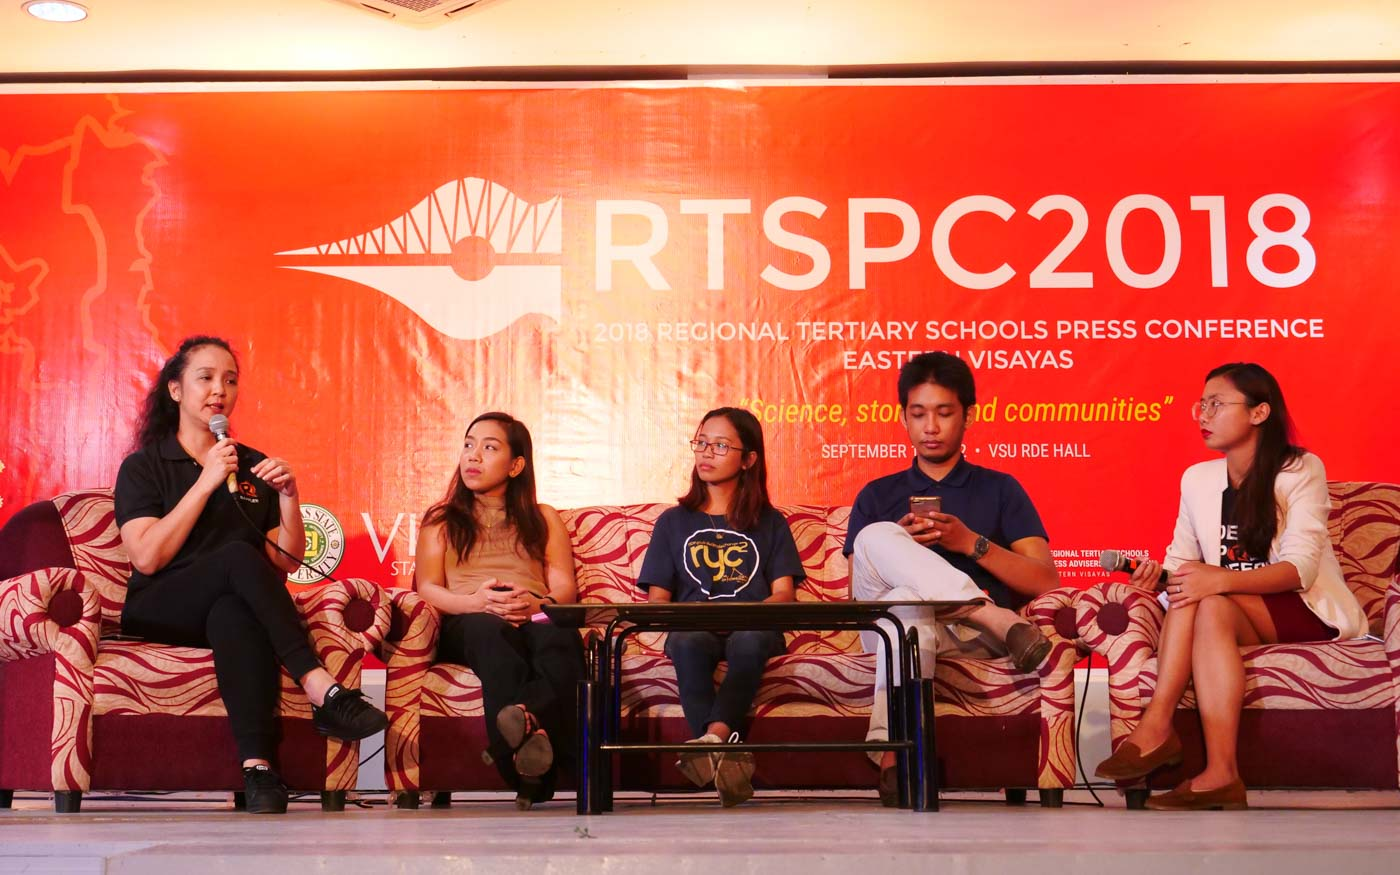 """#MOVELEYTE. Journalists discuss how campus journalists can help in the fighting disinformation online during the forum on """"Social Good in the Digital Age"""" held at the Visayas State University on September 19, 2018. Photo byJohn Paul Corton"""